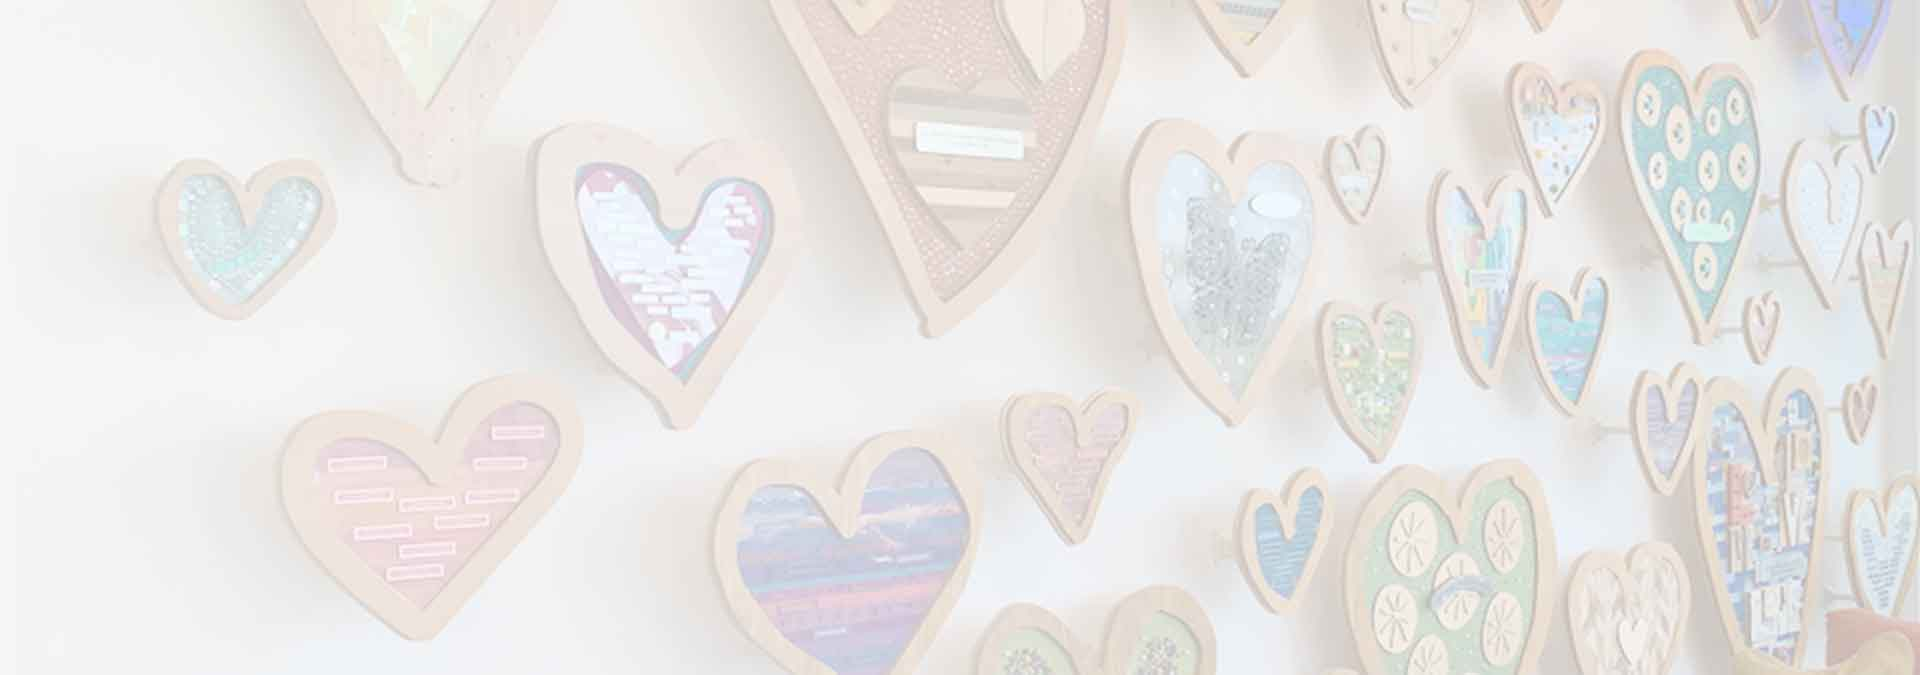 Faded background image of heart shaped plaques